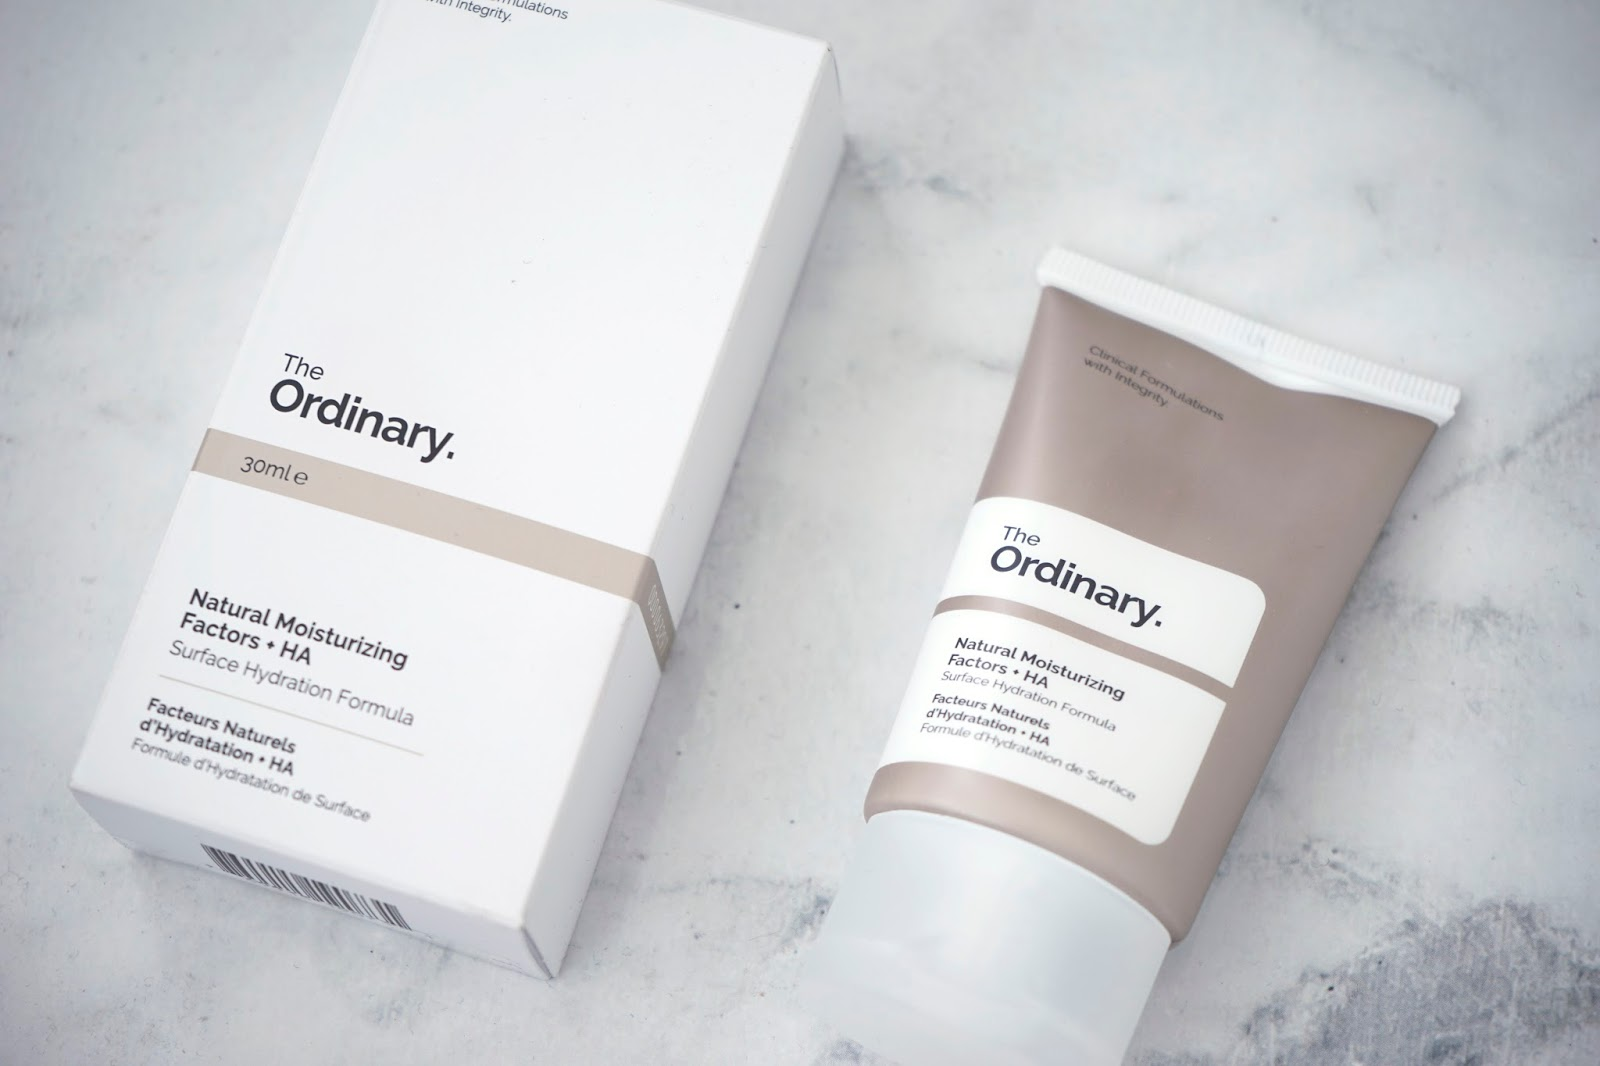 Natural Moisturizing Factors + HA by the ordinary #21